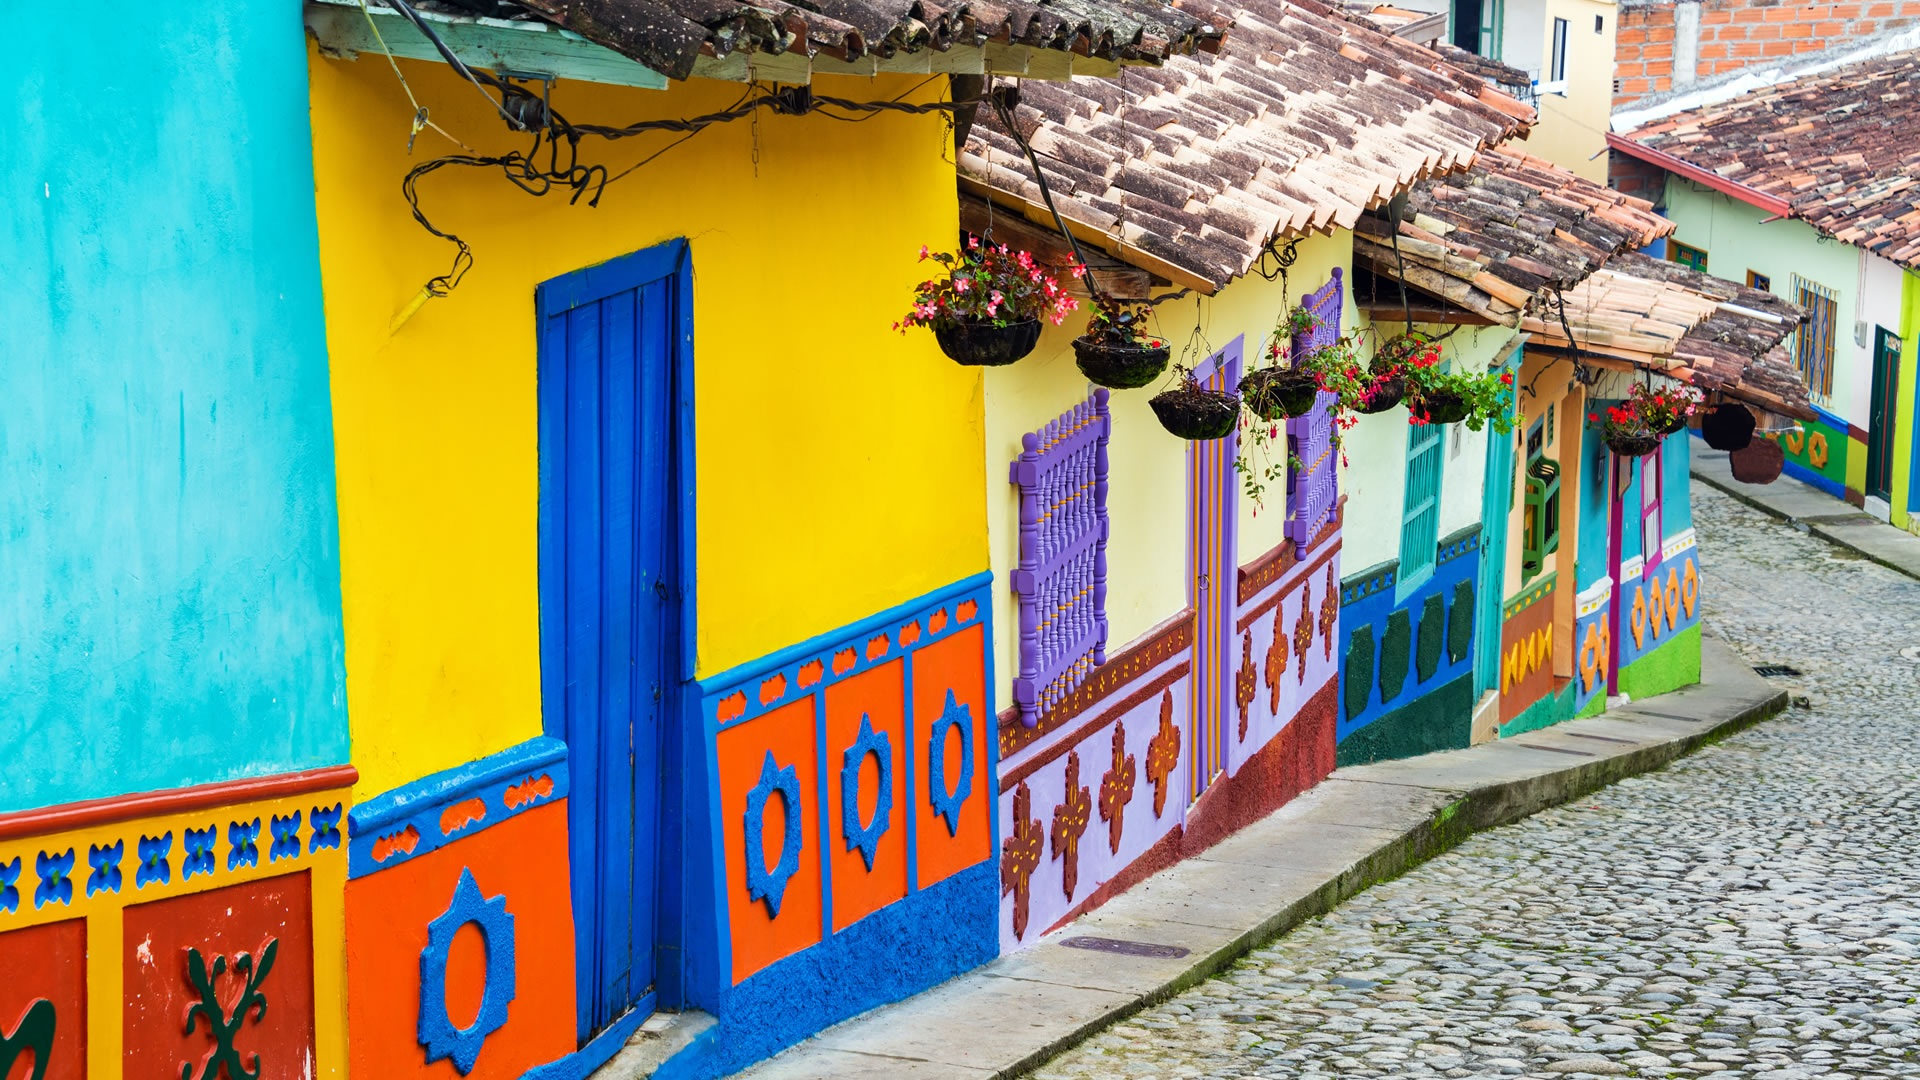 For us, this is Colombia – colorful and cultural!